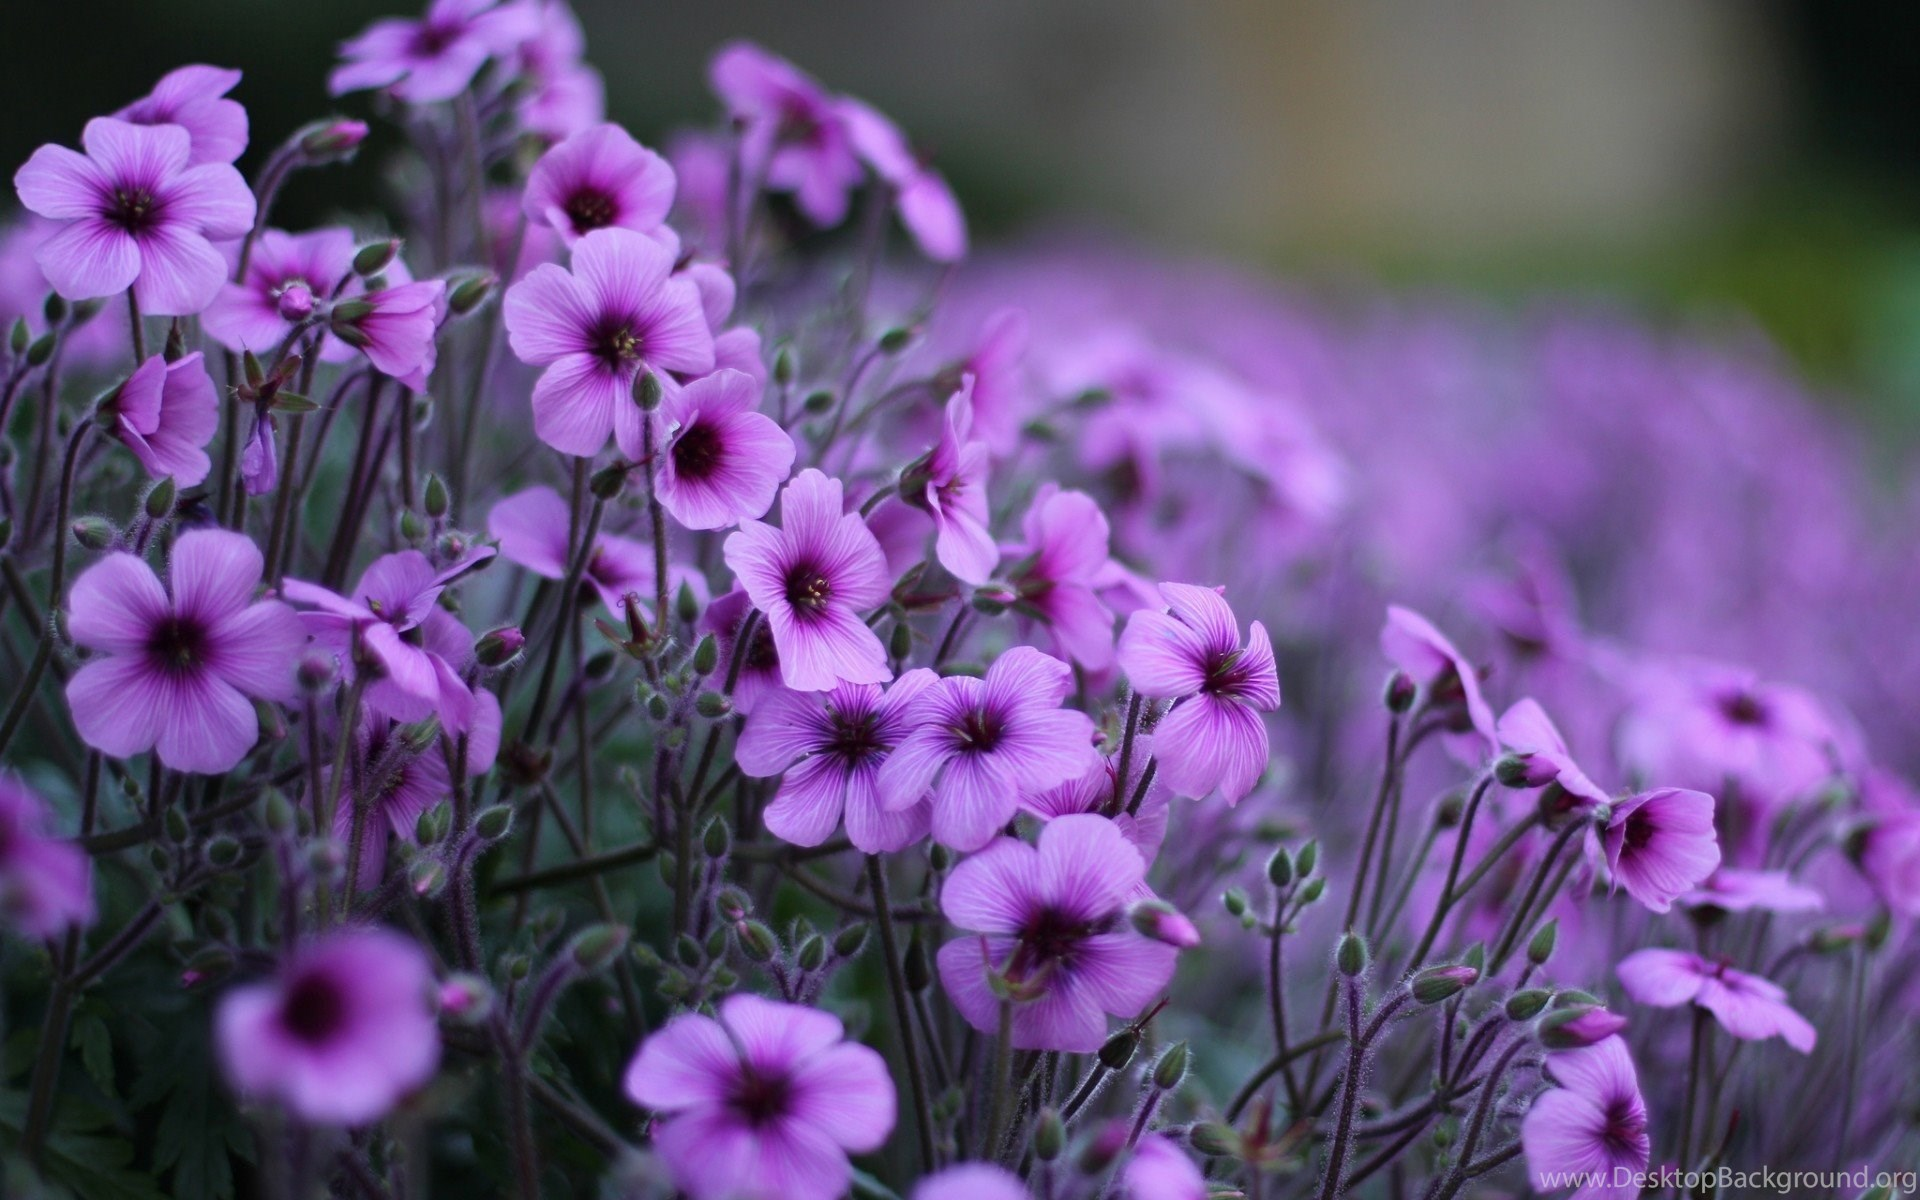 Beautiful purple flower wallpapers high quality flower wallpapers widescreen izmirmasajfo